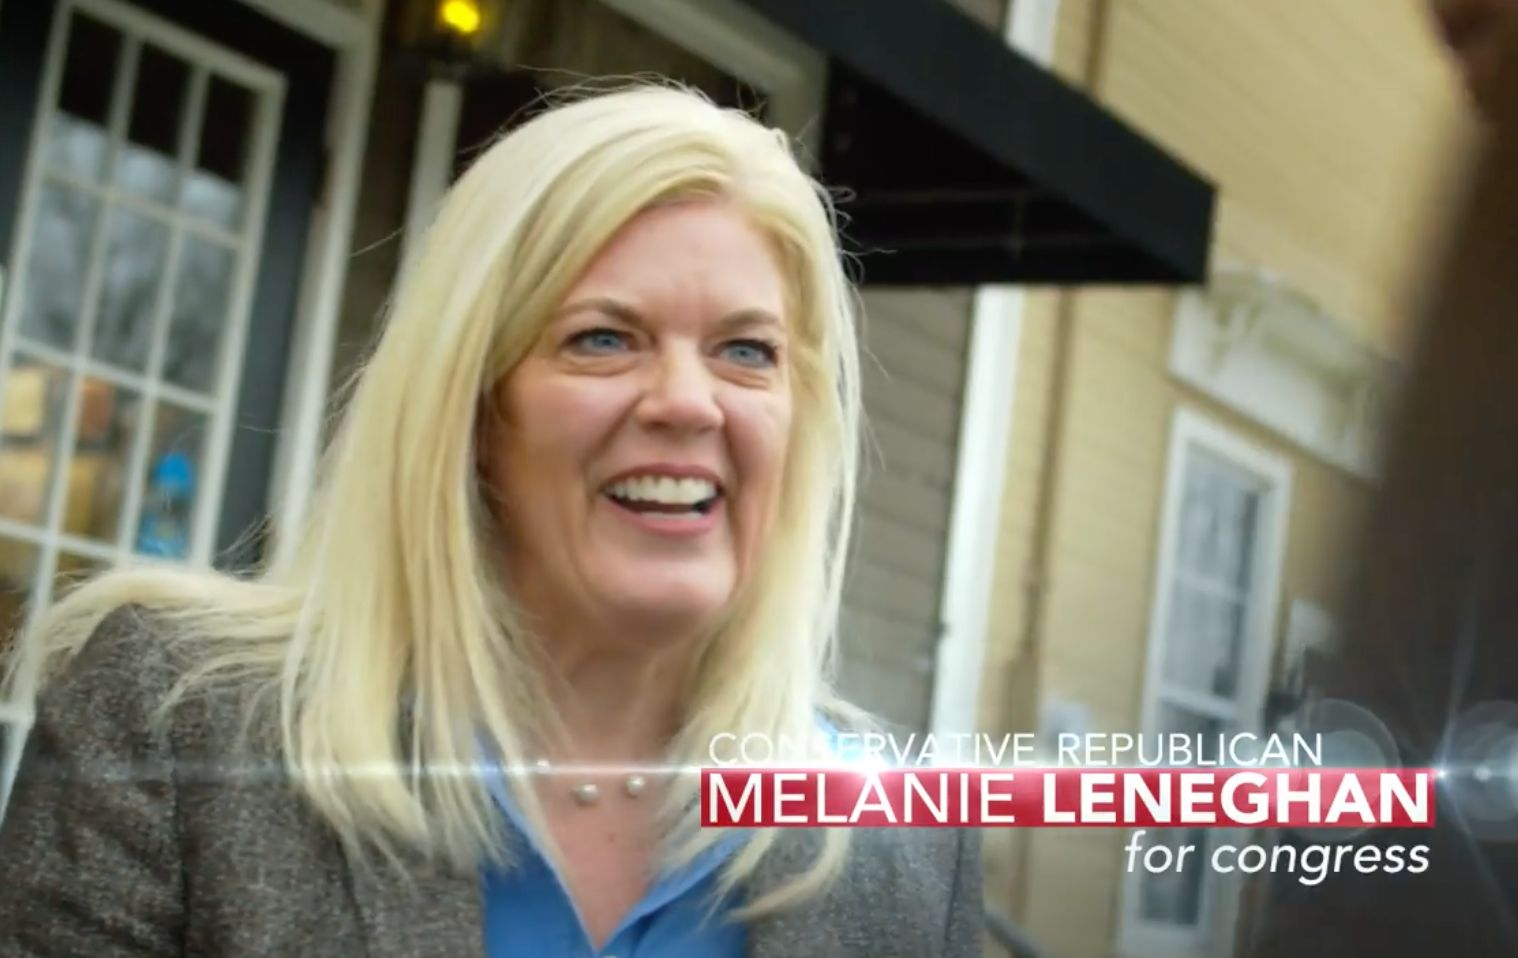 Businesswoman Melanie Leneghan had the backing of influential House conservatives in the GOP race.